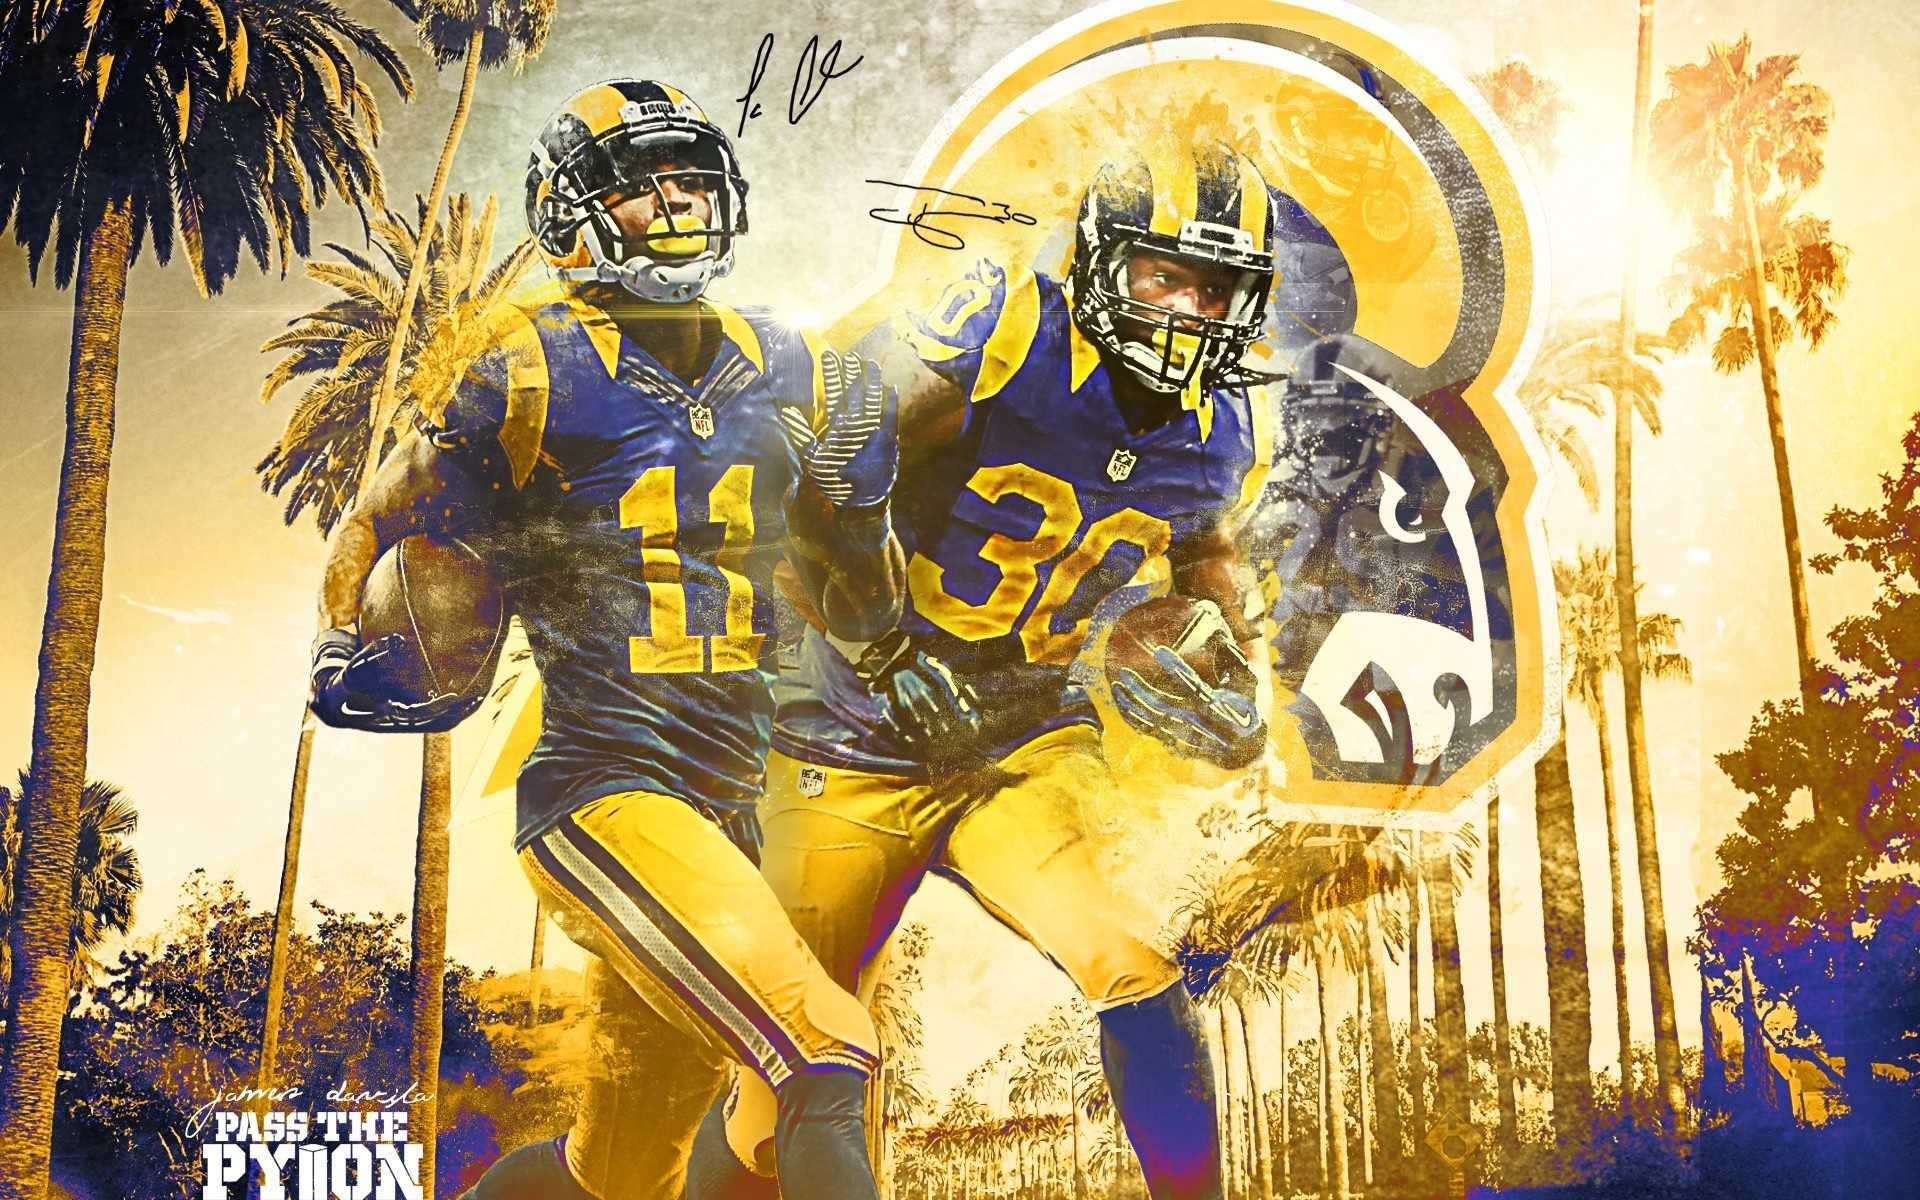 los angeles rams wallpaper hd pics for computer la ~ waraqh